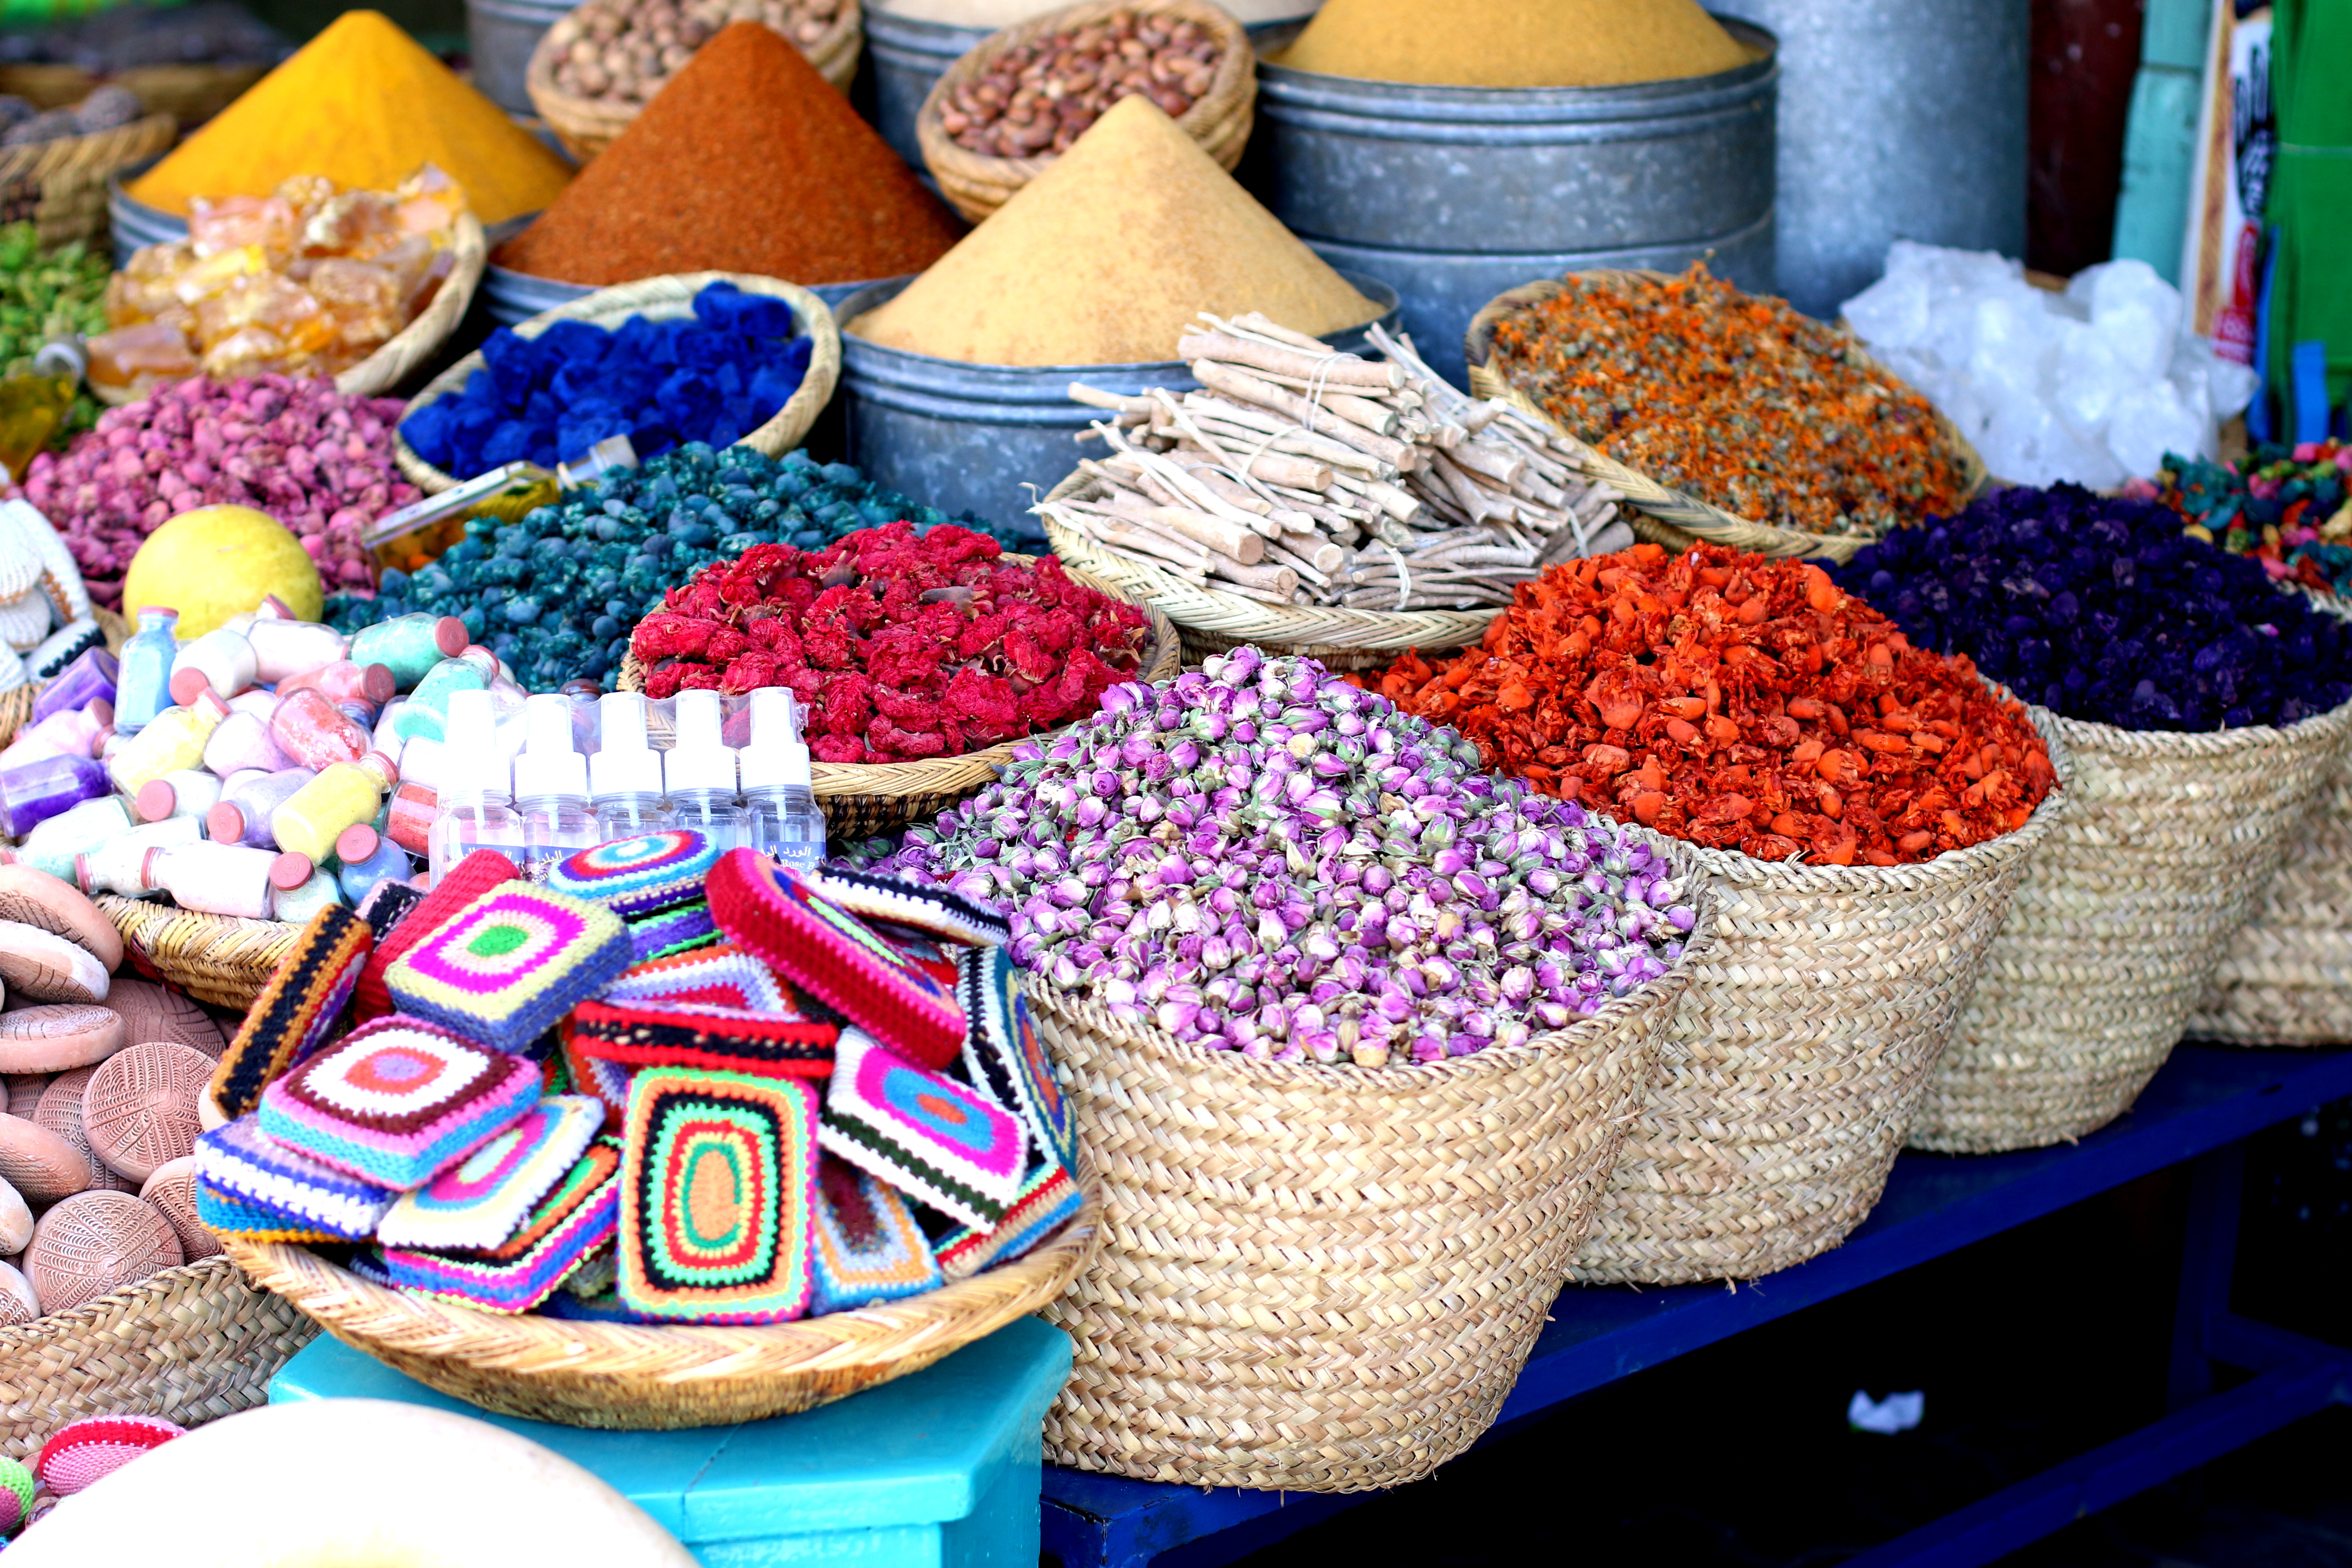 marrakech travel guide tips insider tips advices travel blog